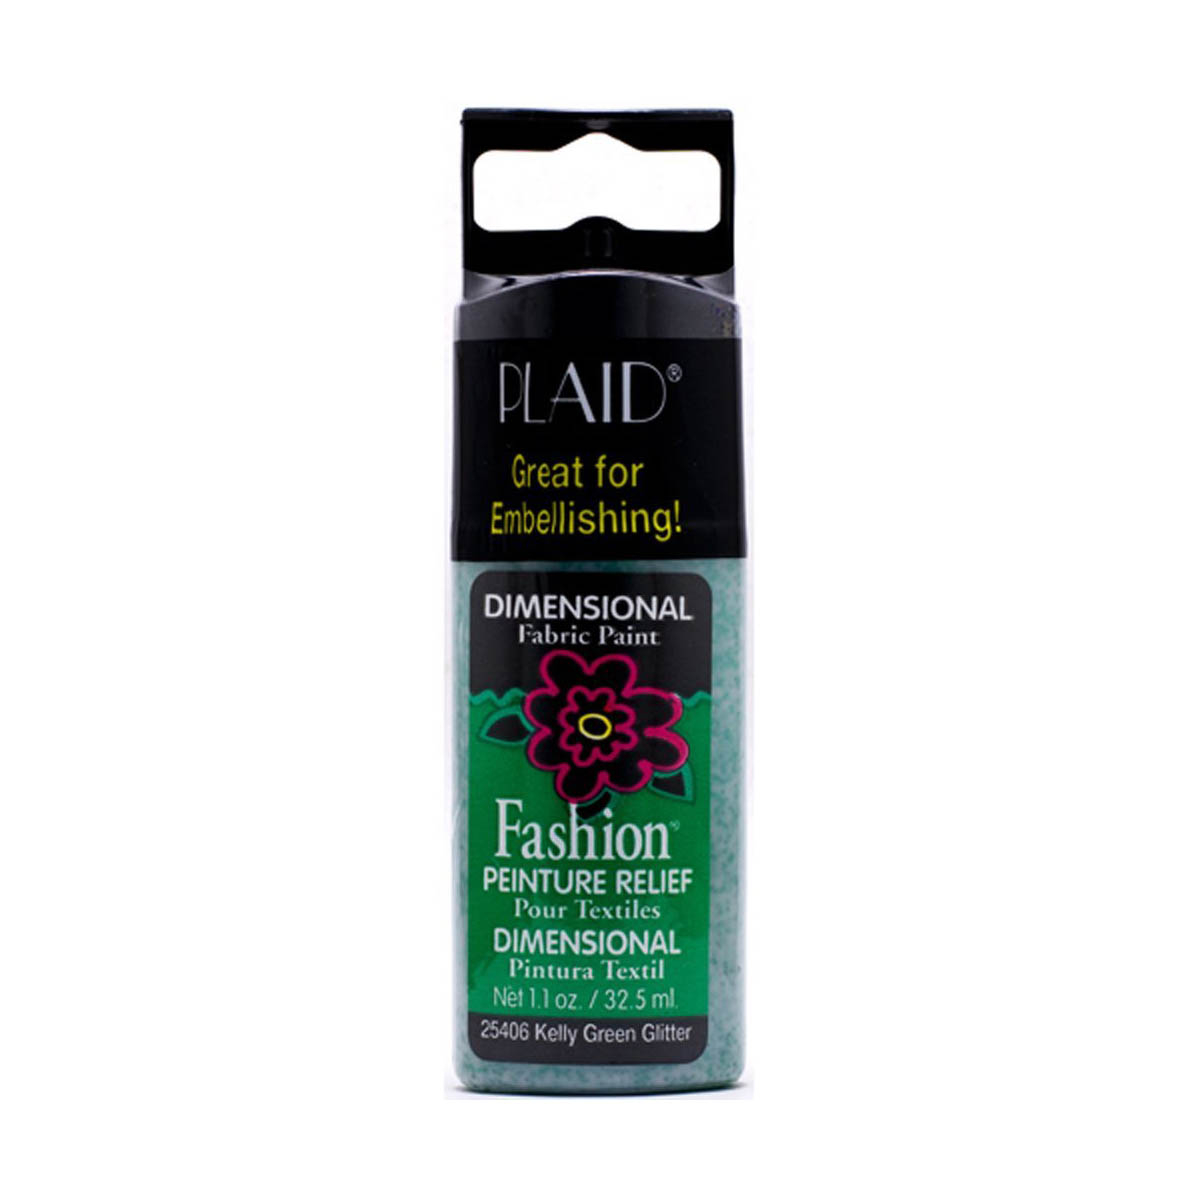 Fashion ® Dimensional Fabric Paint  - Glitter - Kelly Green - 25406